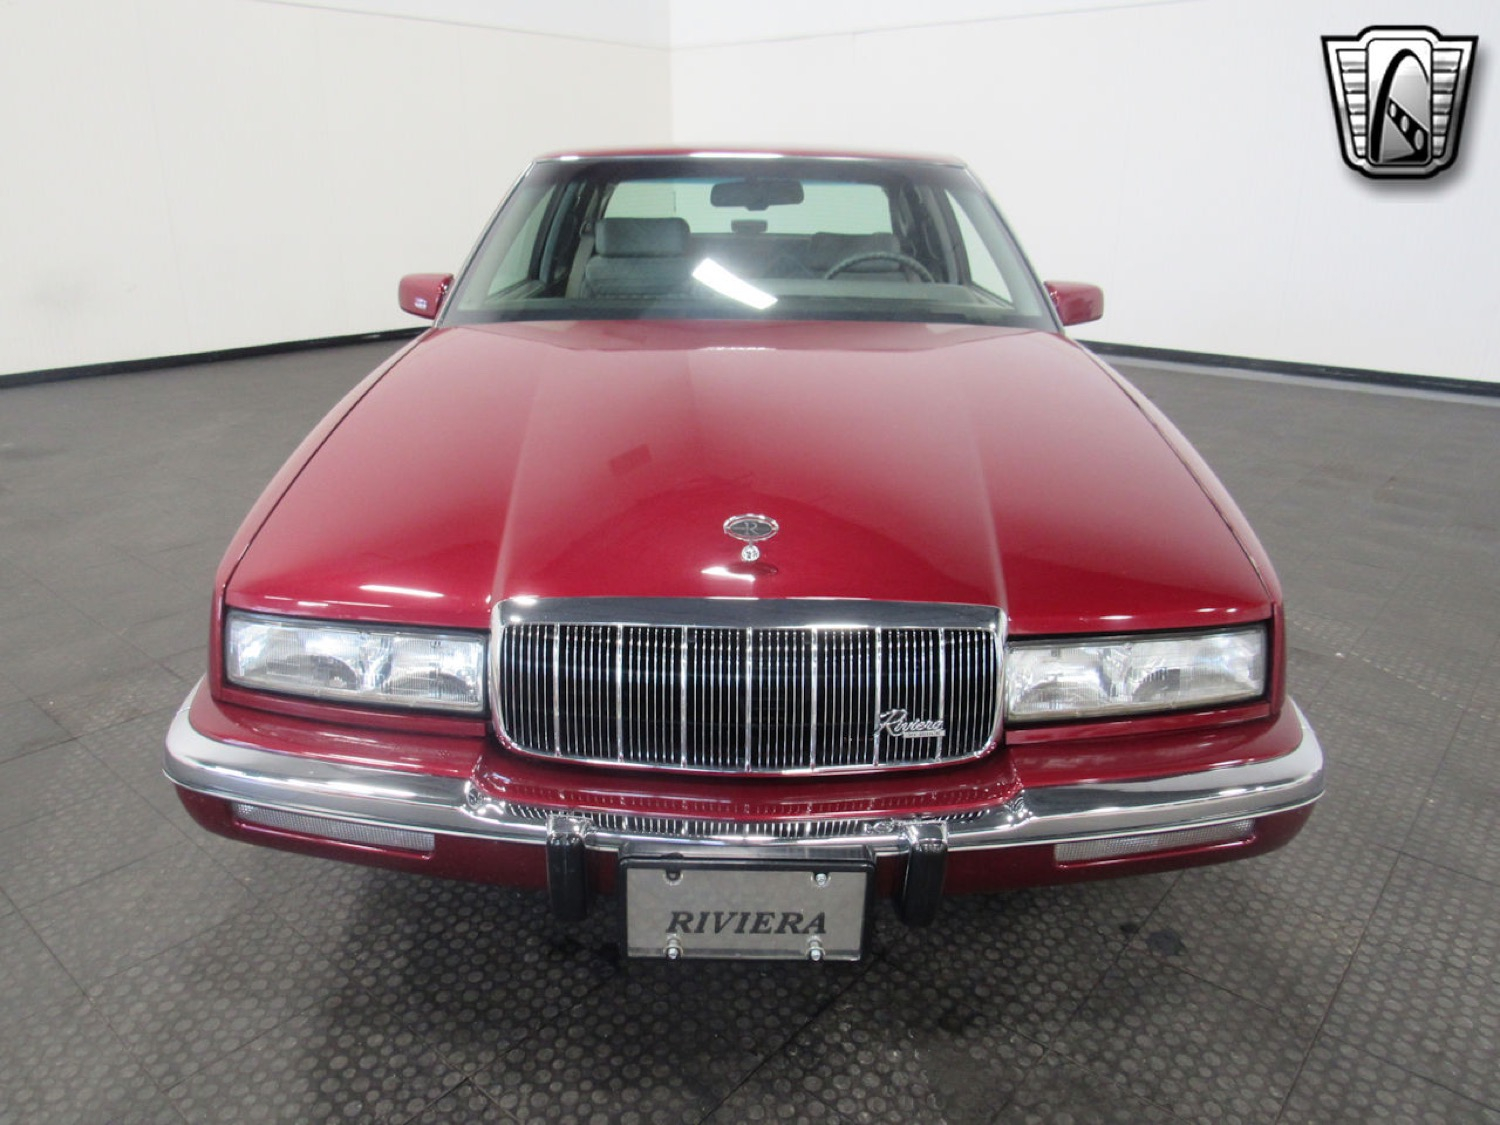 Slick 1992 Buick Riviera For Sale: Video | Gm Authority New 2022 Buick Riviera Pictures, Grill, Models